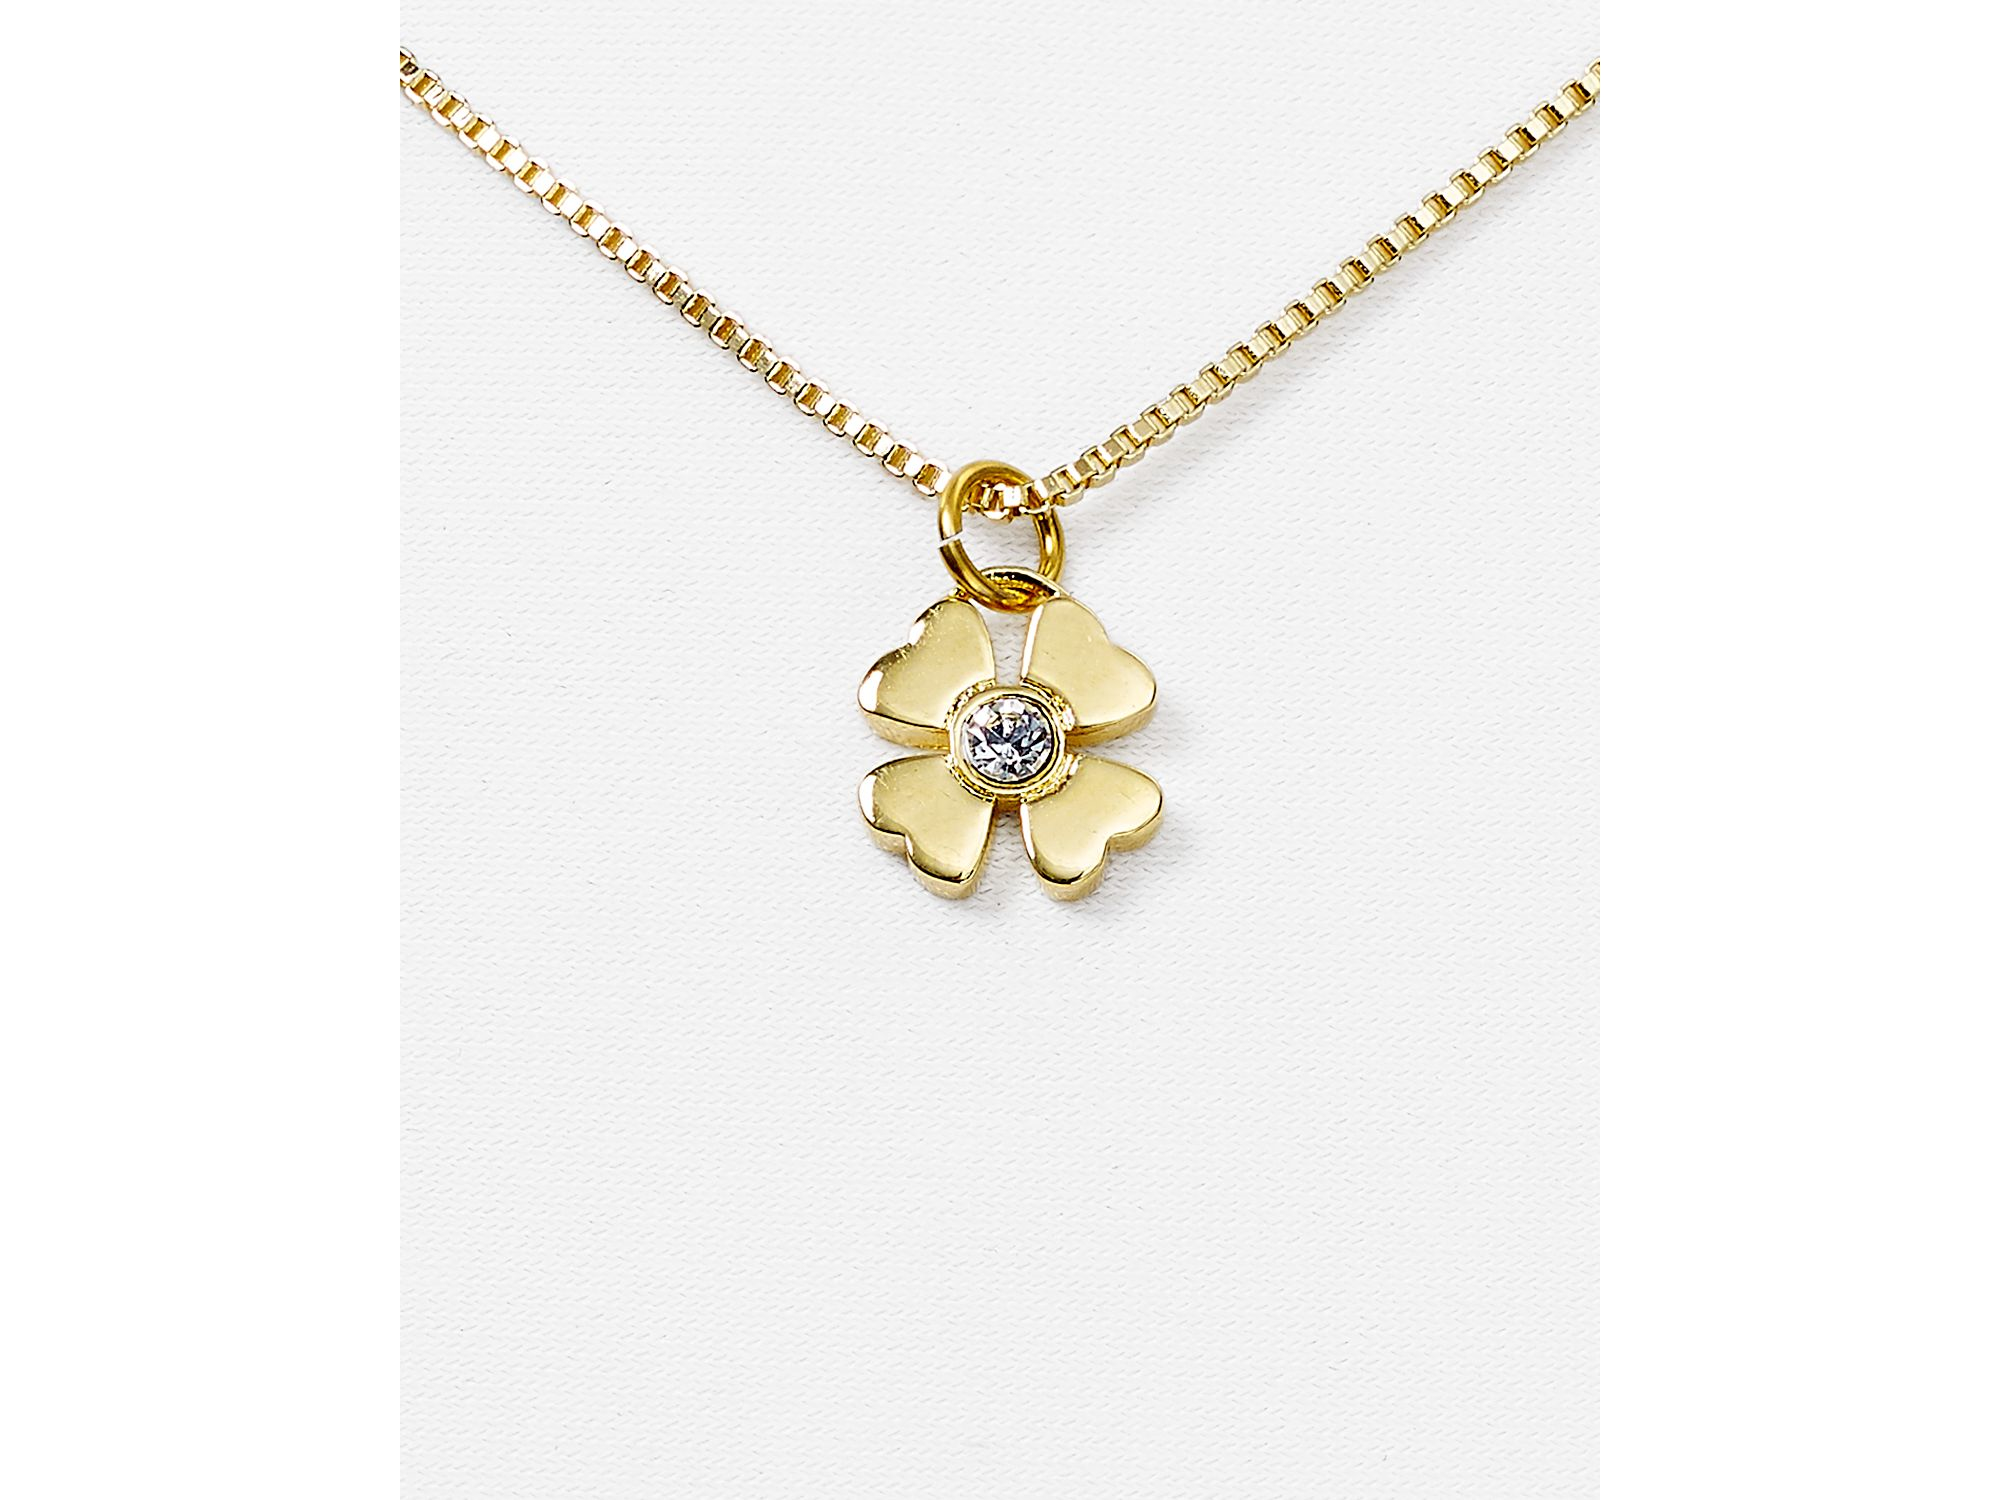 clover gift natural leaf black in necklace women locket flower for border chain bottle real round pendant necklaces flowers item glass current four dried drop shipping gold pendants from